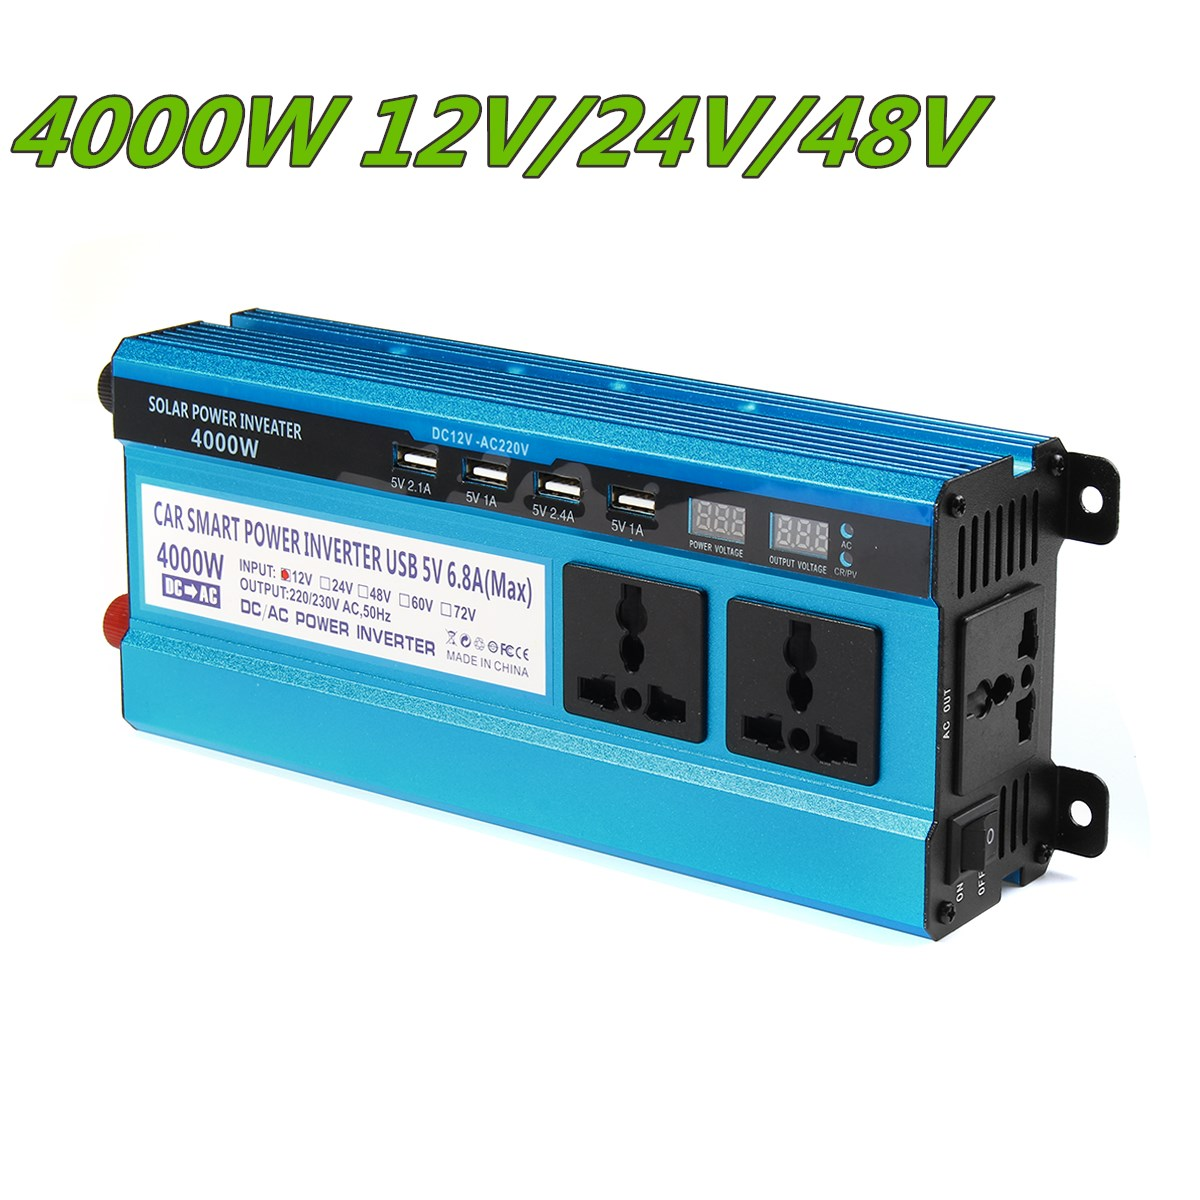 Solar Inverter DC 12V 24V 48V to AC 220V 3000W 4000W 5000W Inverter 19